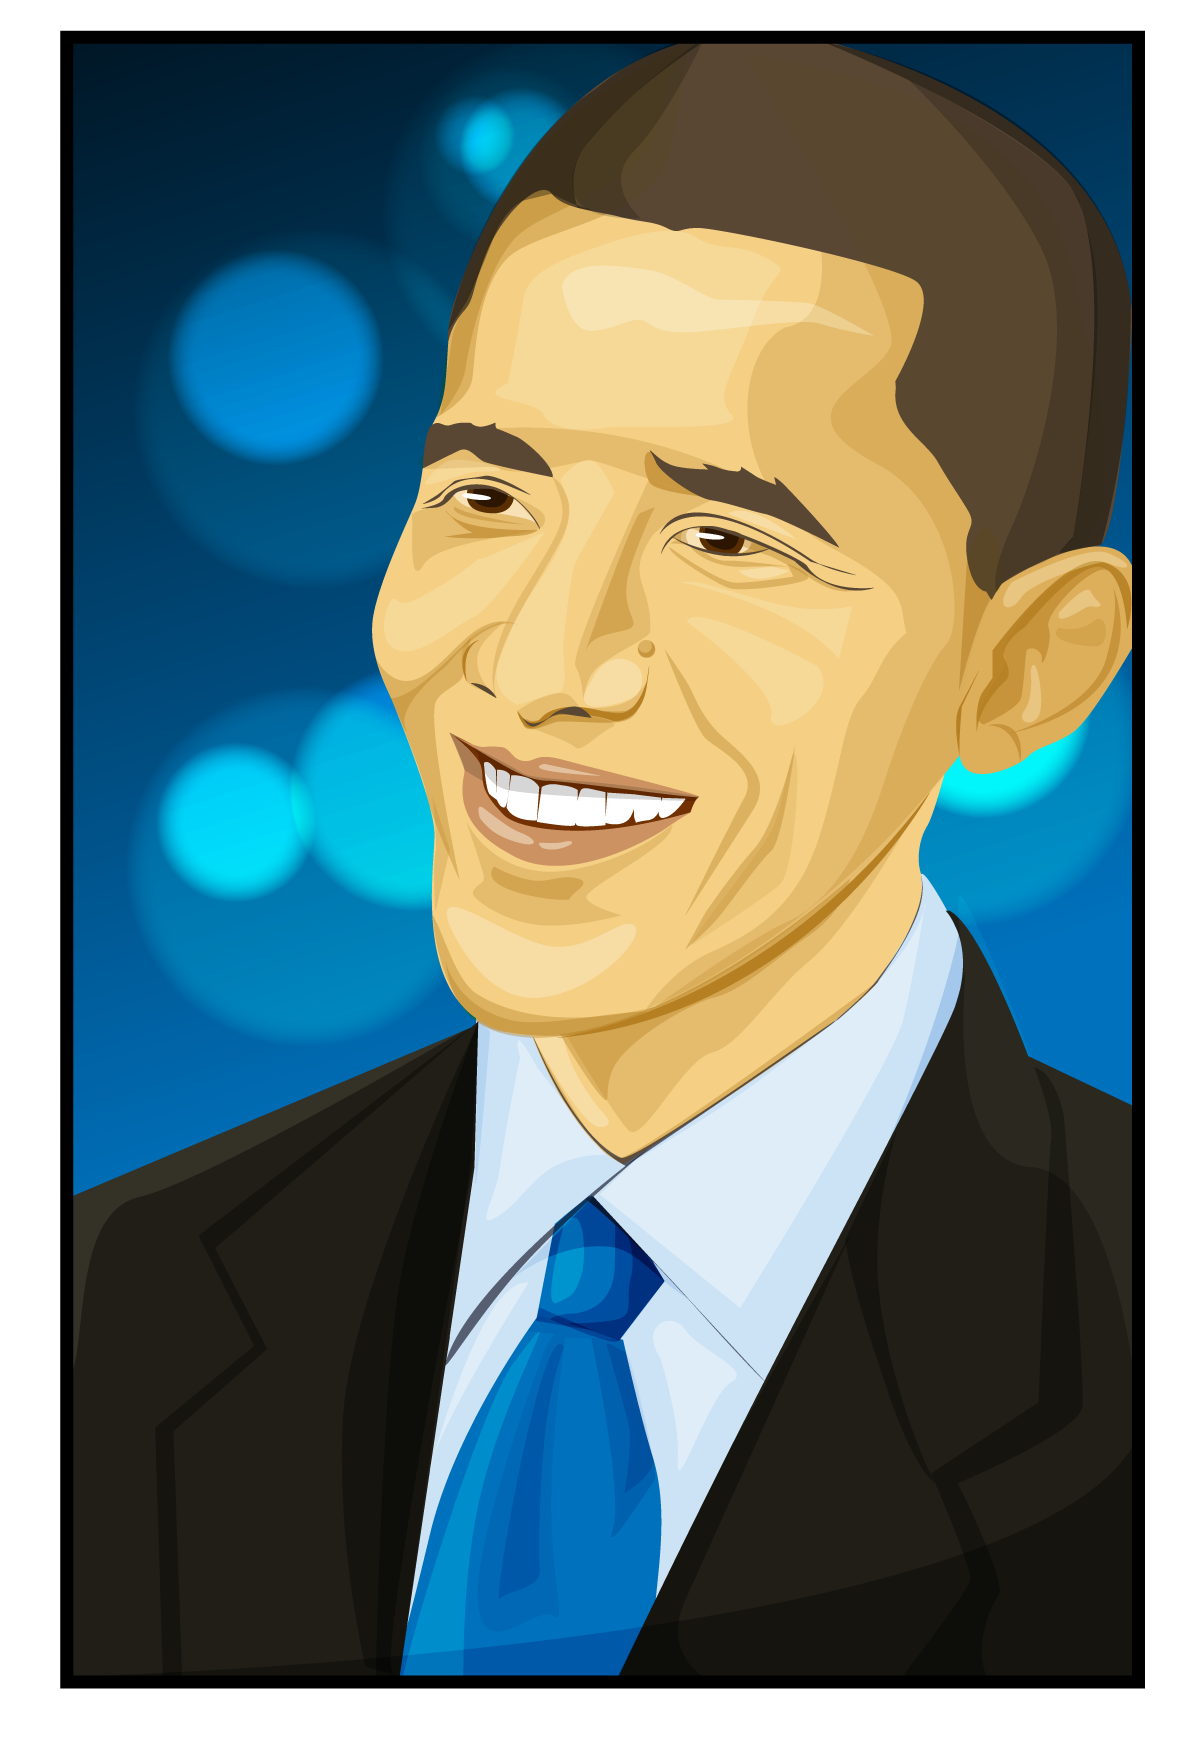 Barack Obama Vectored Illustration